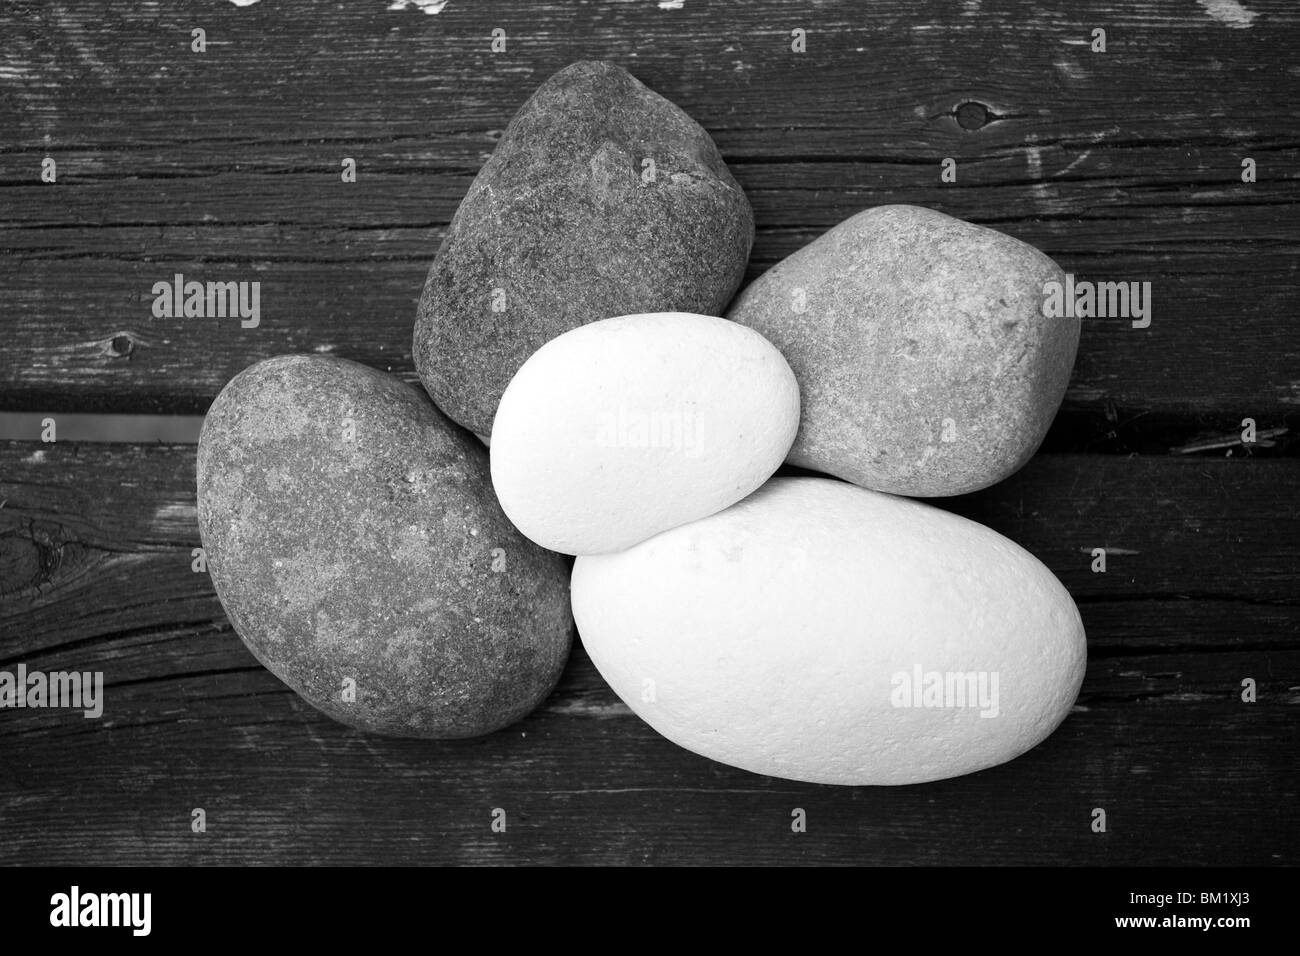 A Black & White image of five beach pebbles on old wooden planks - Stock Image